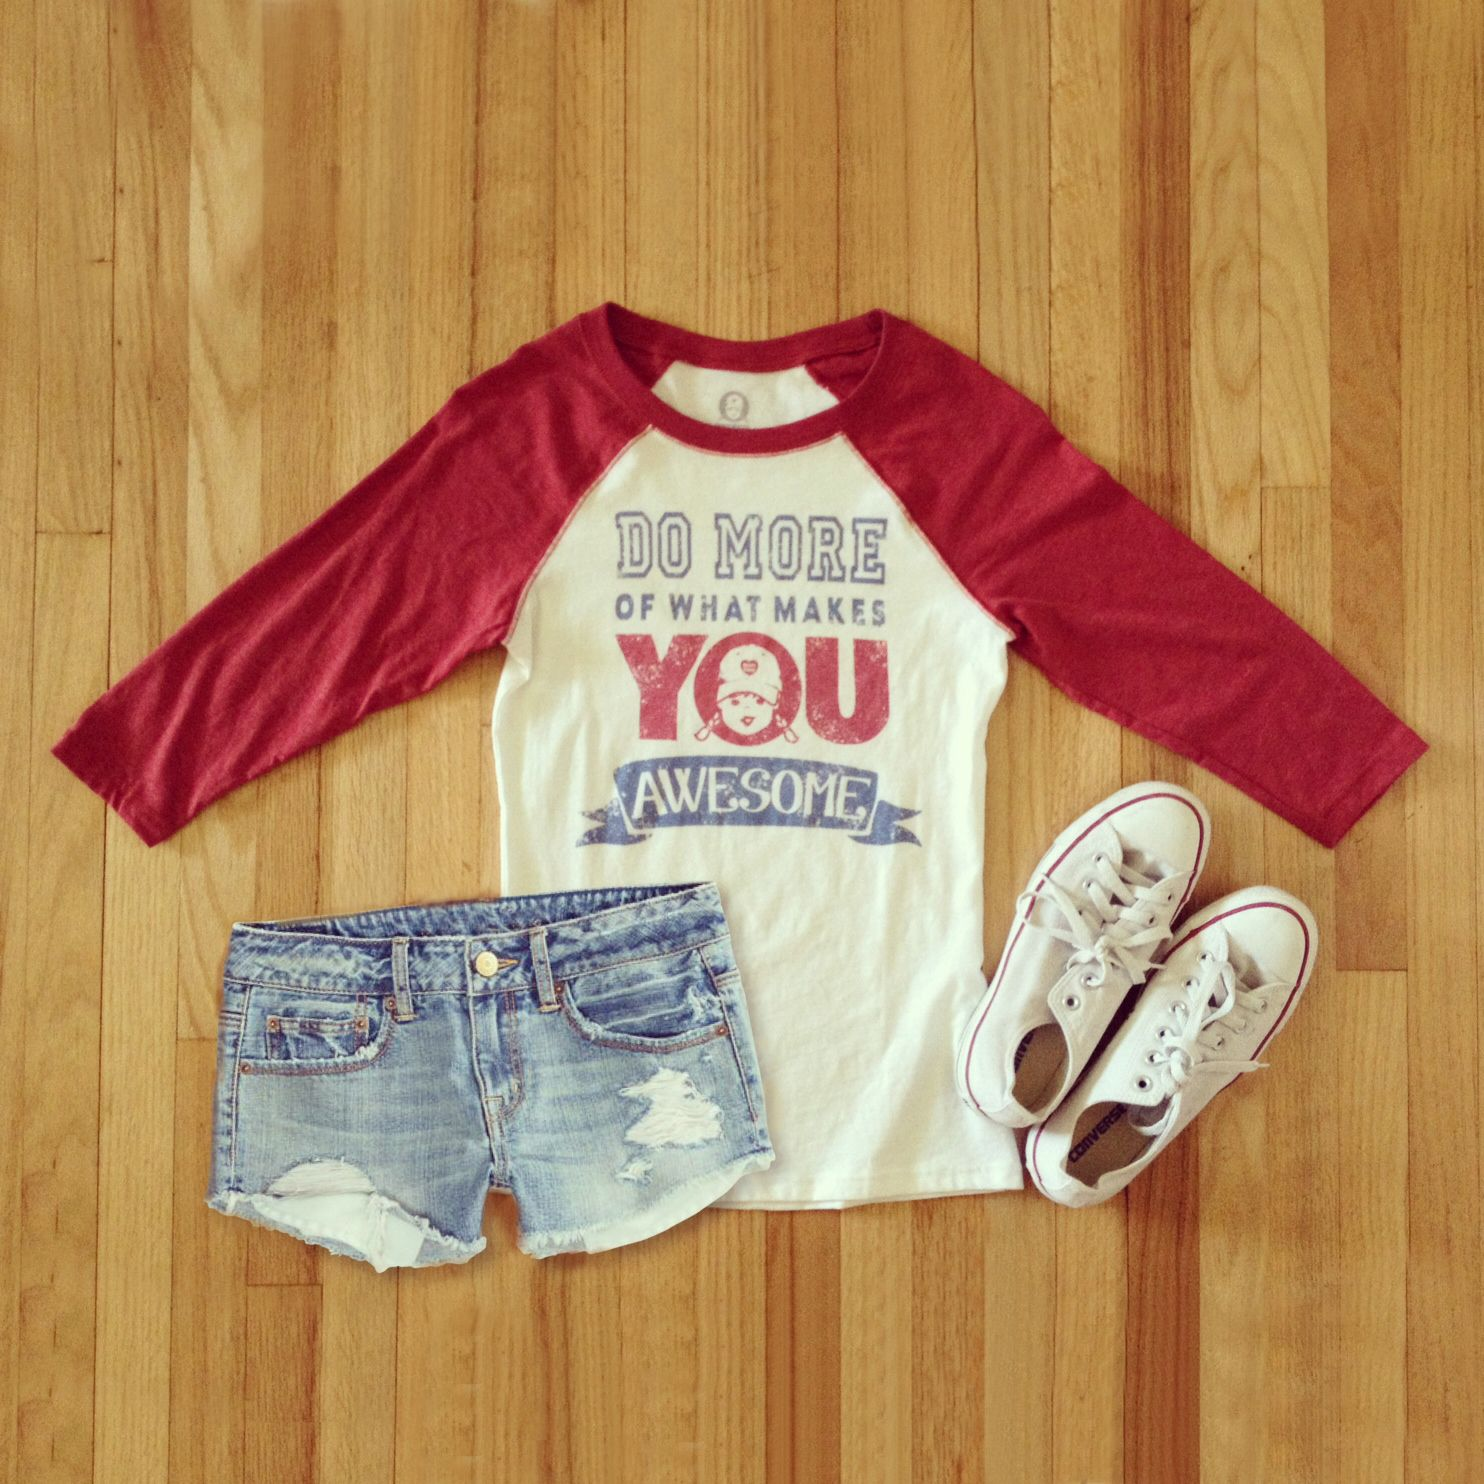 8c4500b02d7af Baseball Raglan Tee Quotes T Shirts Do More Of What Makes YOU ...